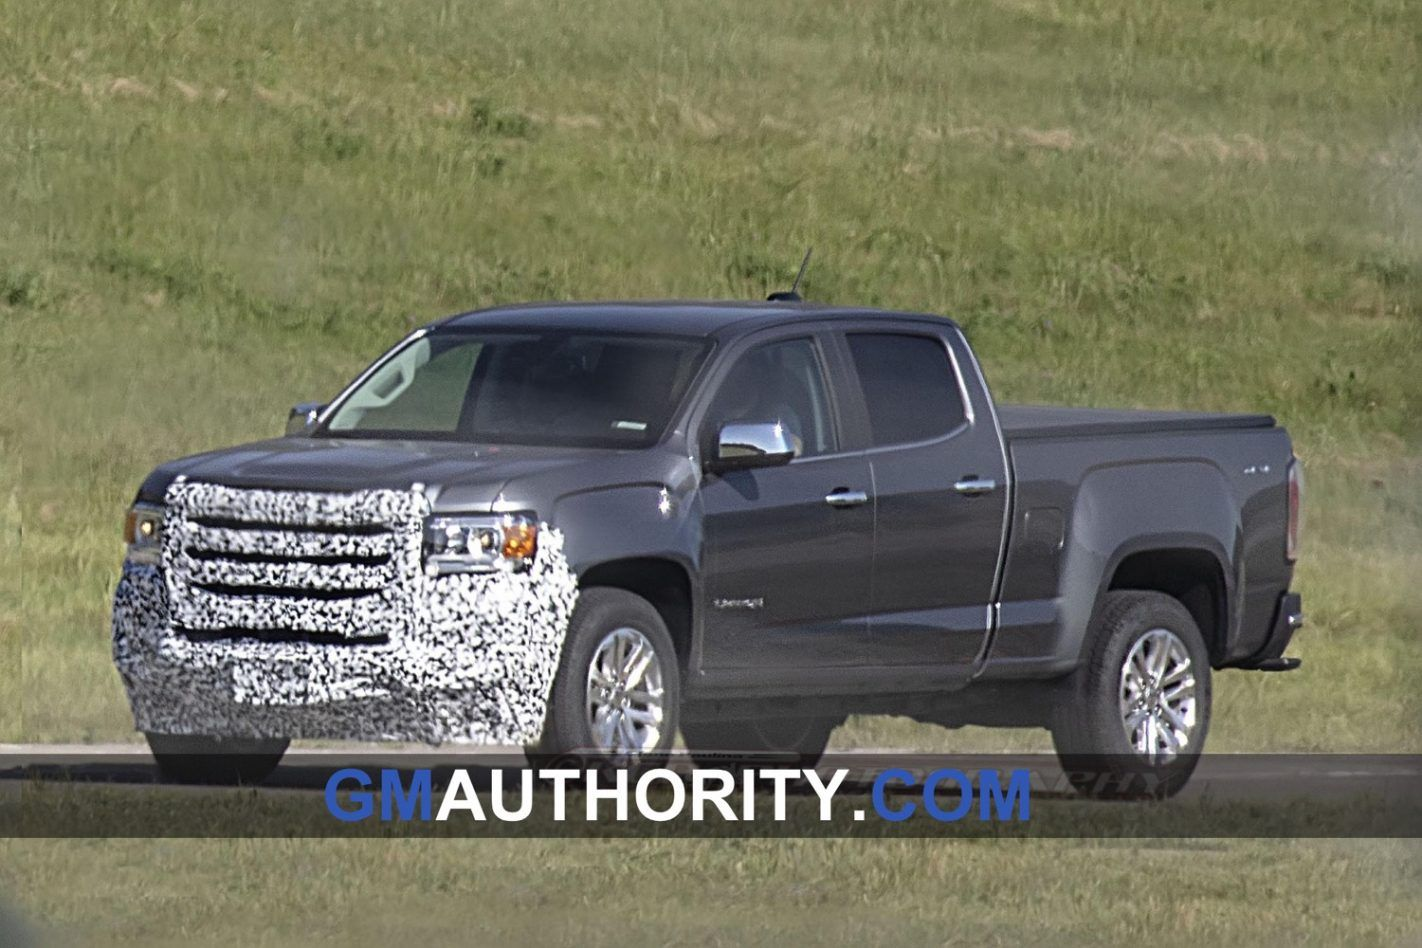 Do not expect too much from the GMC Canyon in the next